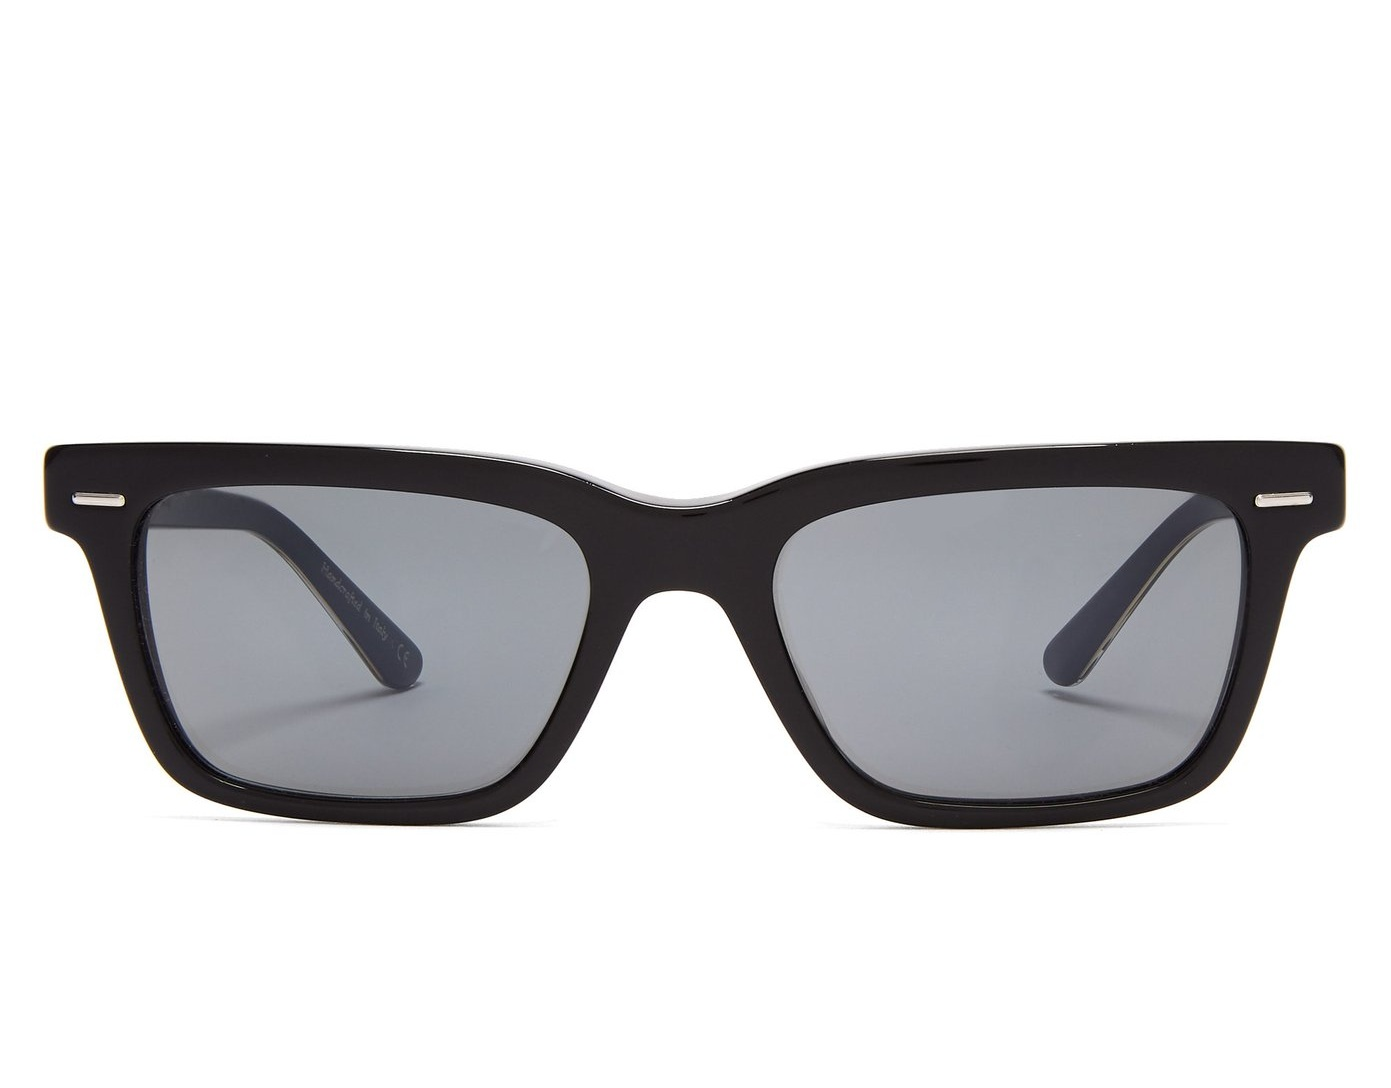 minimal eyewear - by Oliver Peoples x The Row